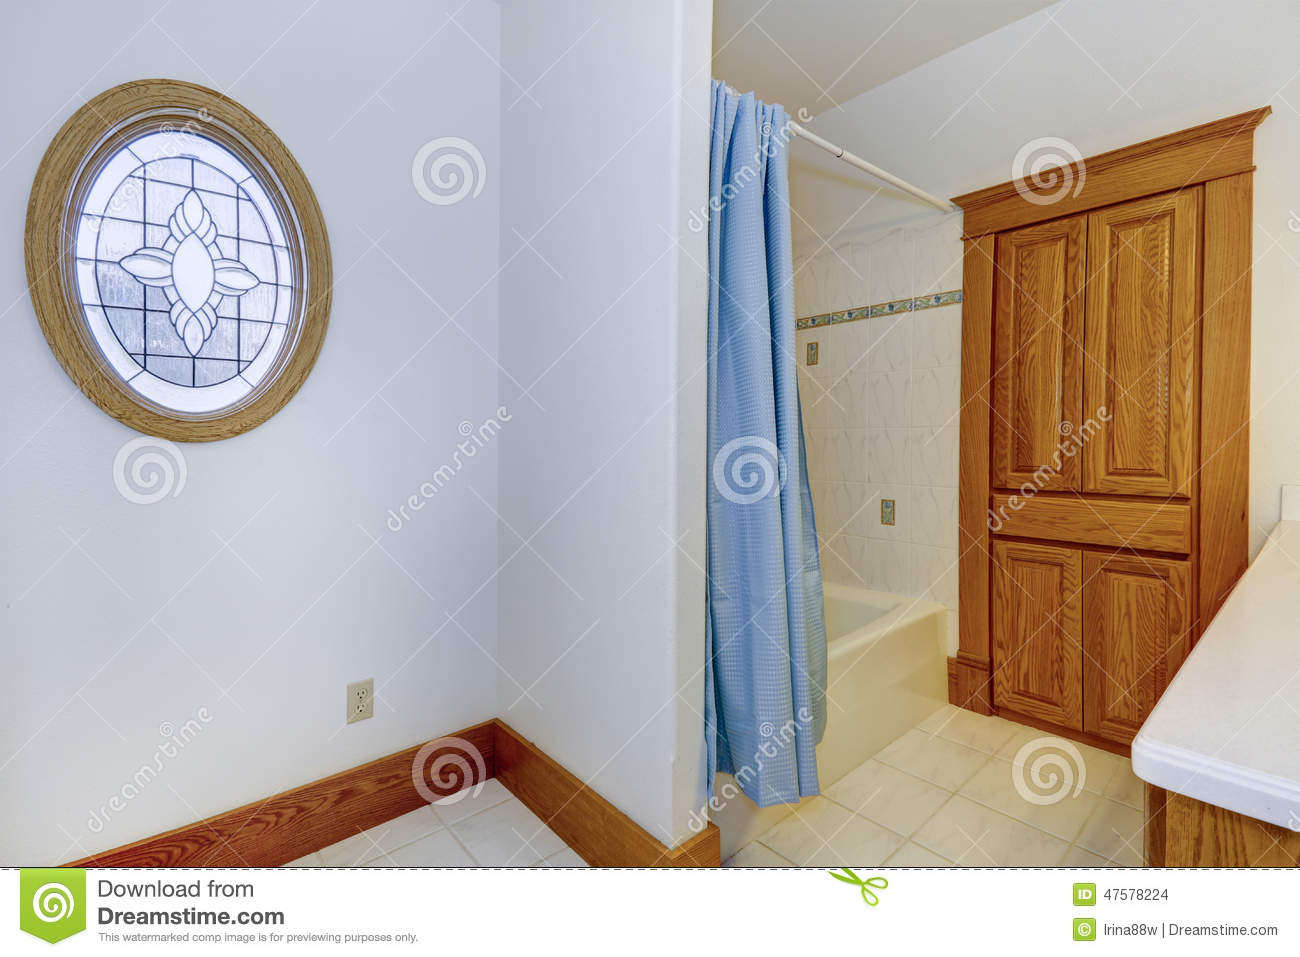 Bathroom Interior In Old American House Stock Photo - Image of ...